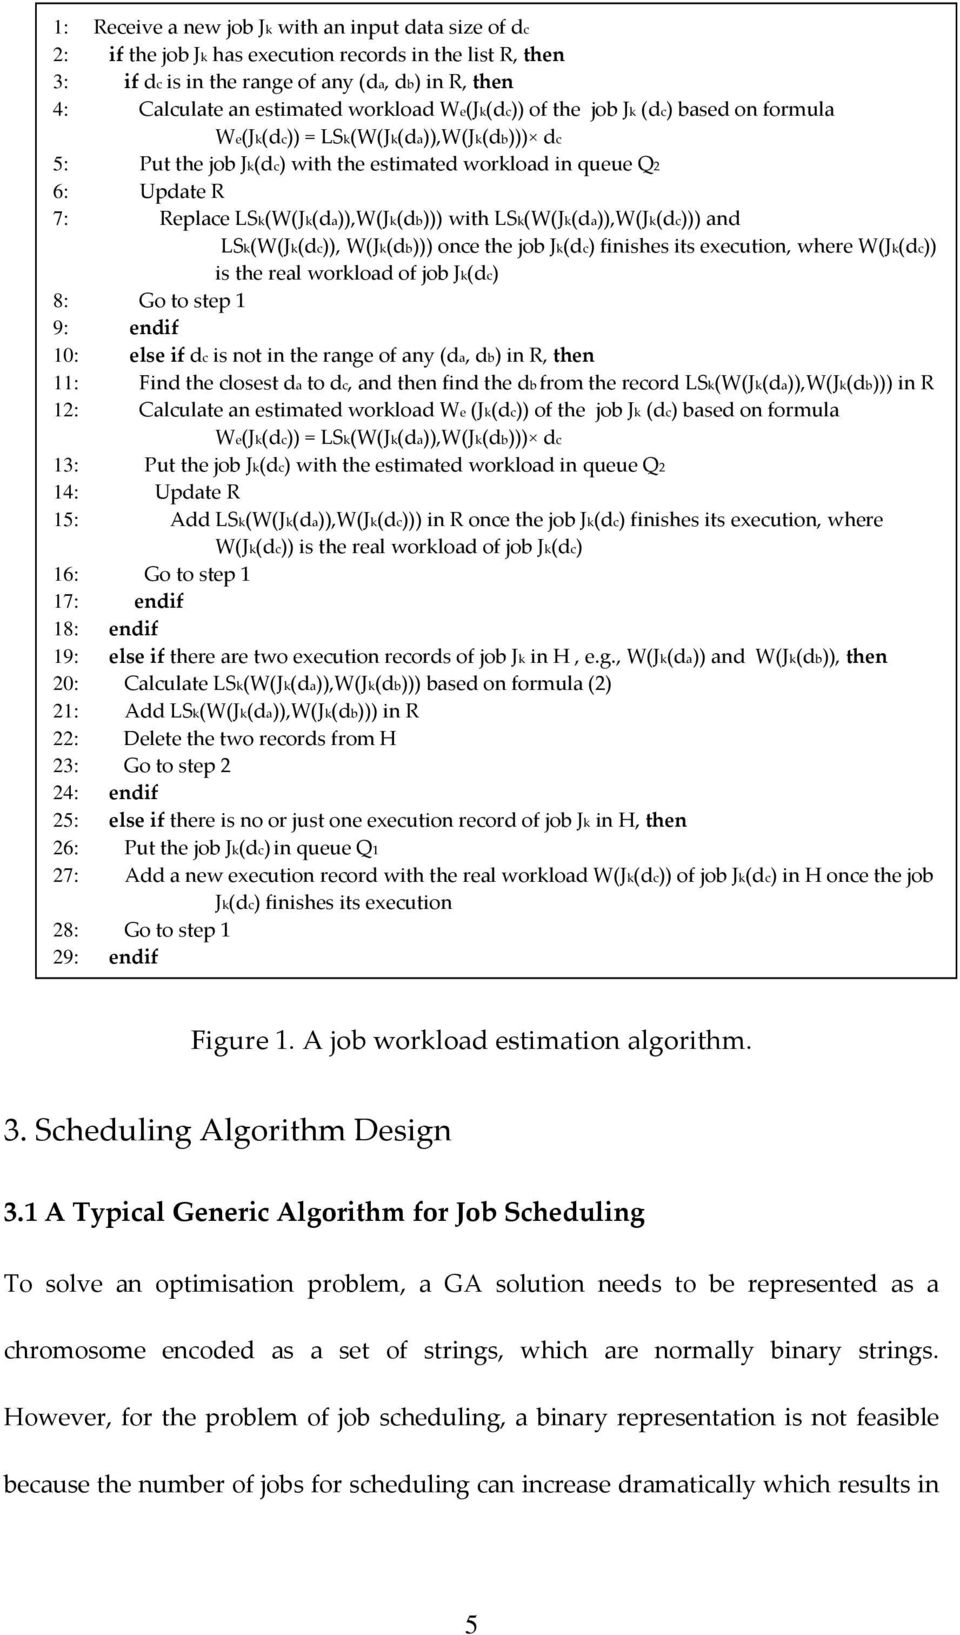 PGGA: A Predictable and Grouped Genetic Algorithm for Job Scheduling